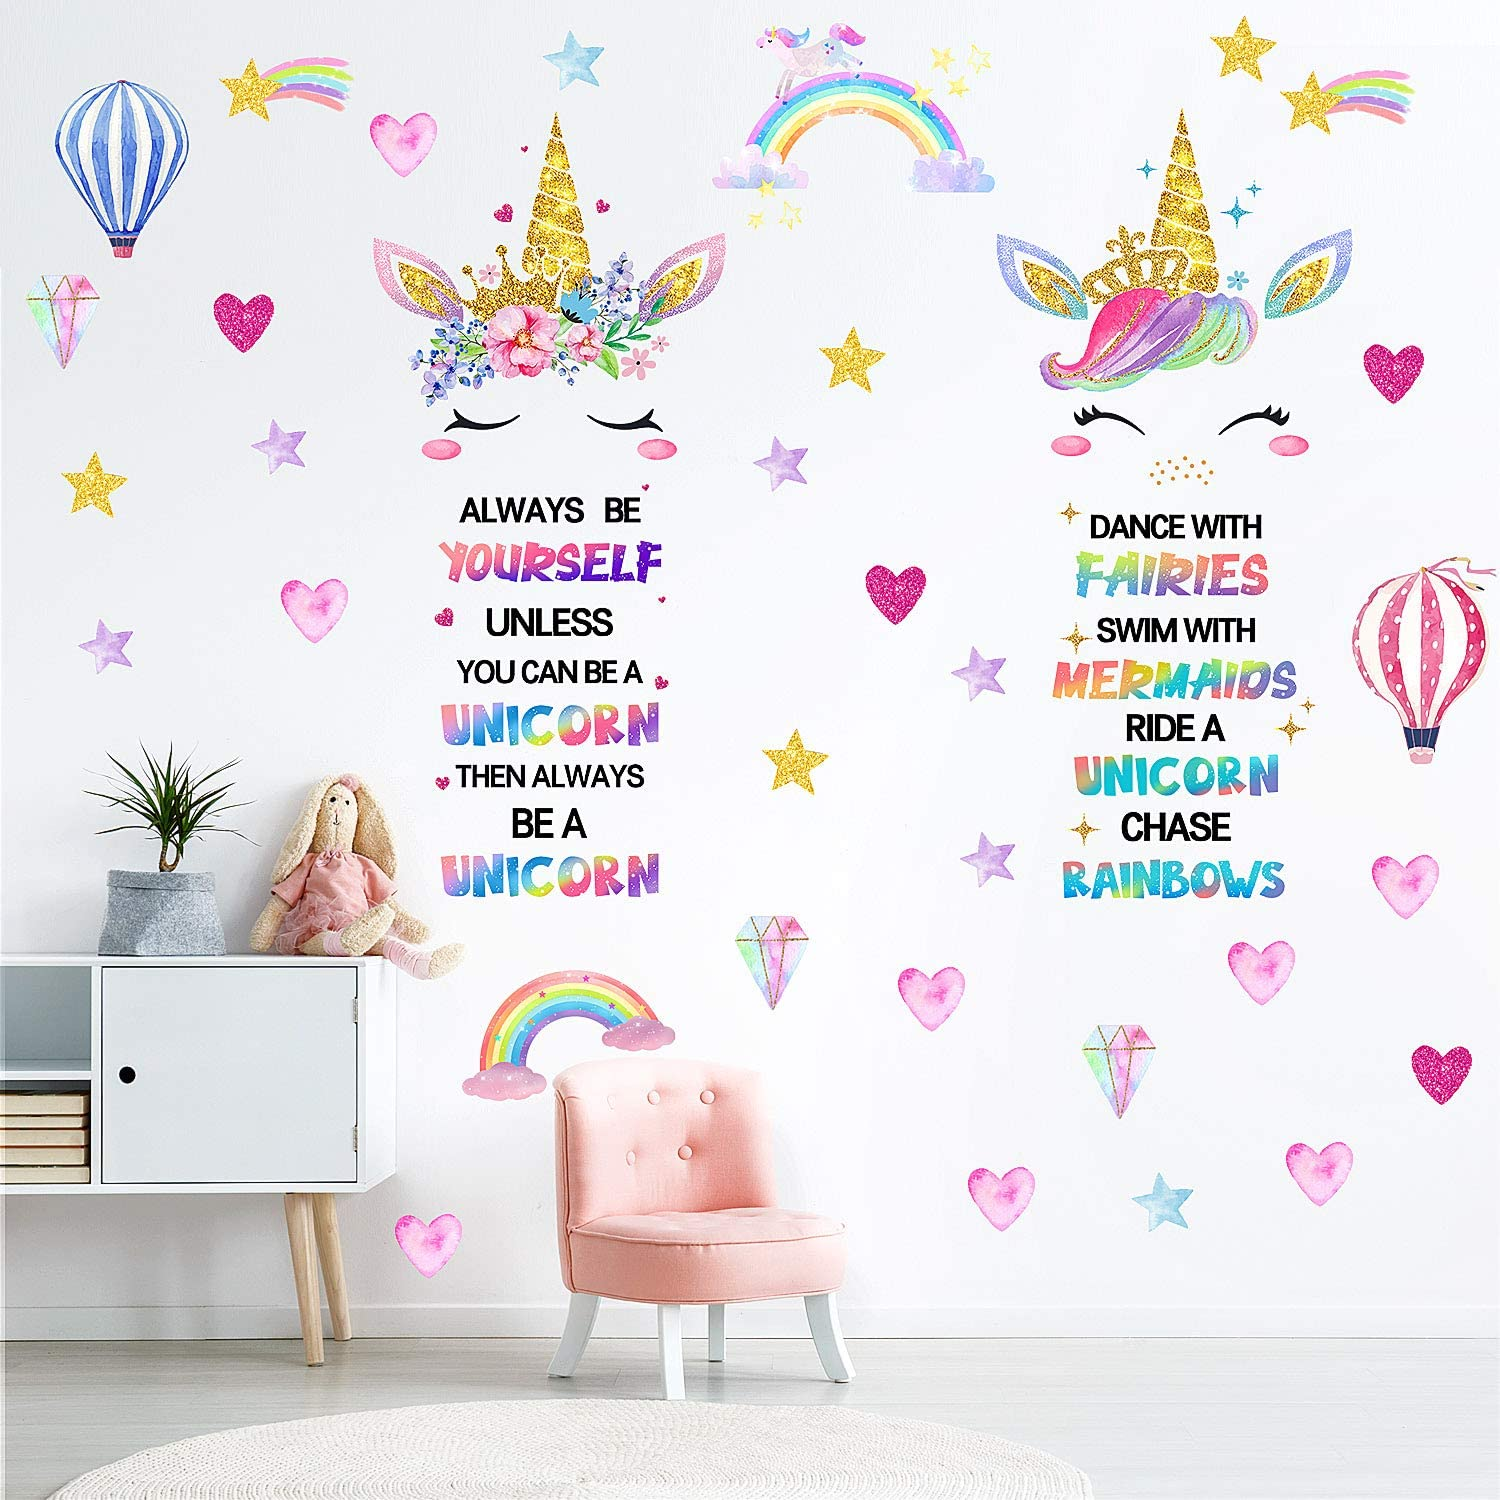 Unicorn Wall Decor,Large Size Unicorn Wall Decals Stickers Decor for Gilrs Kids Bedroom Birthday Party